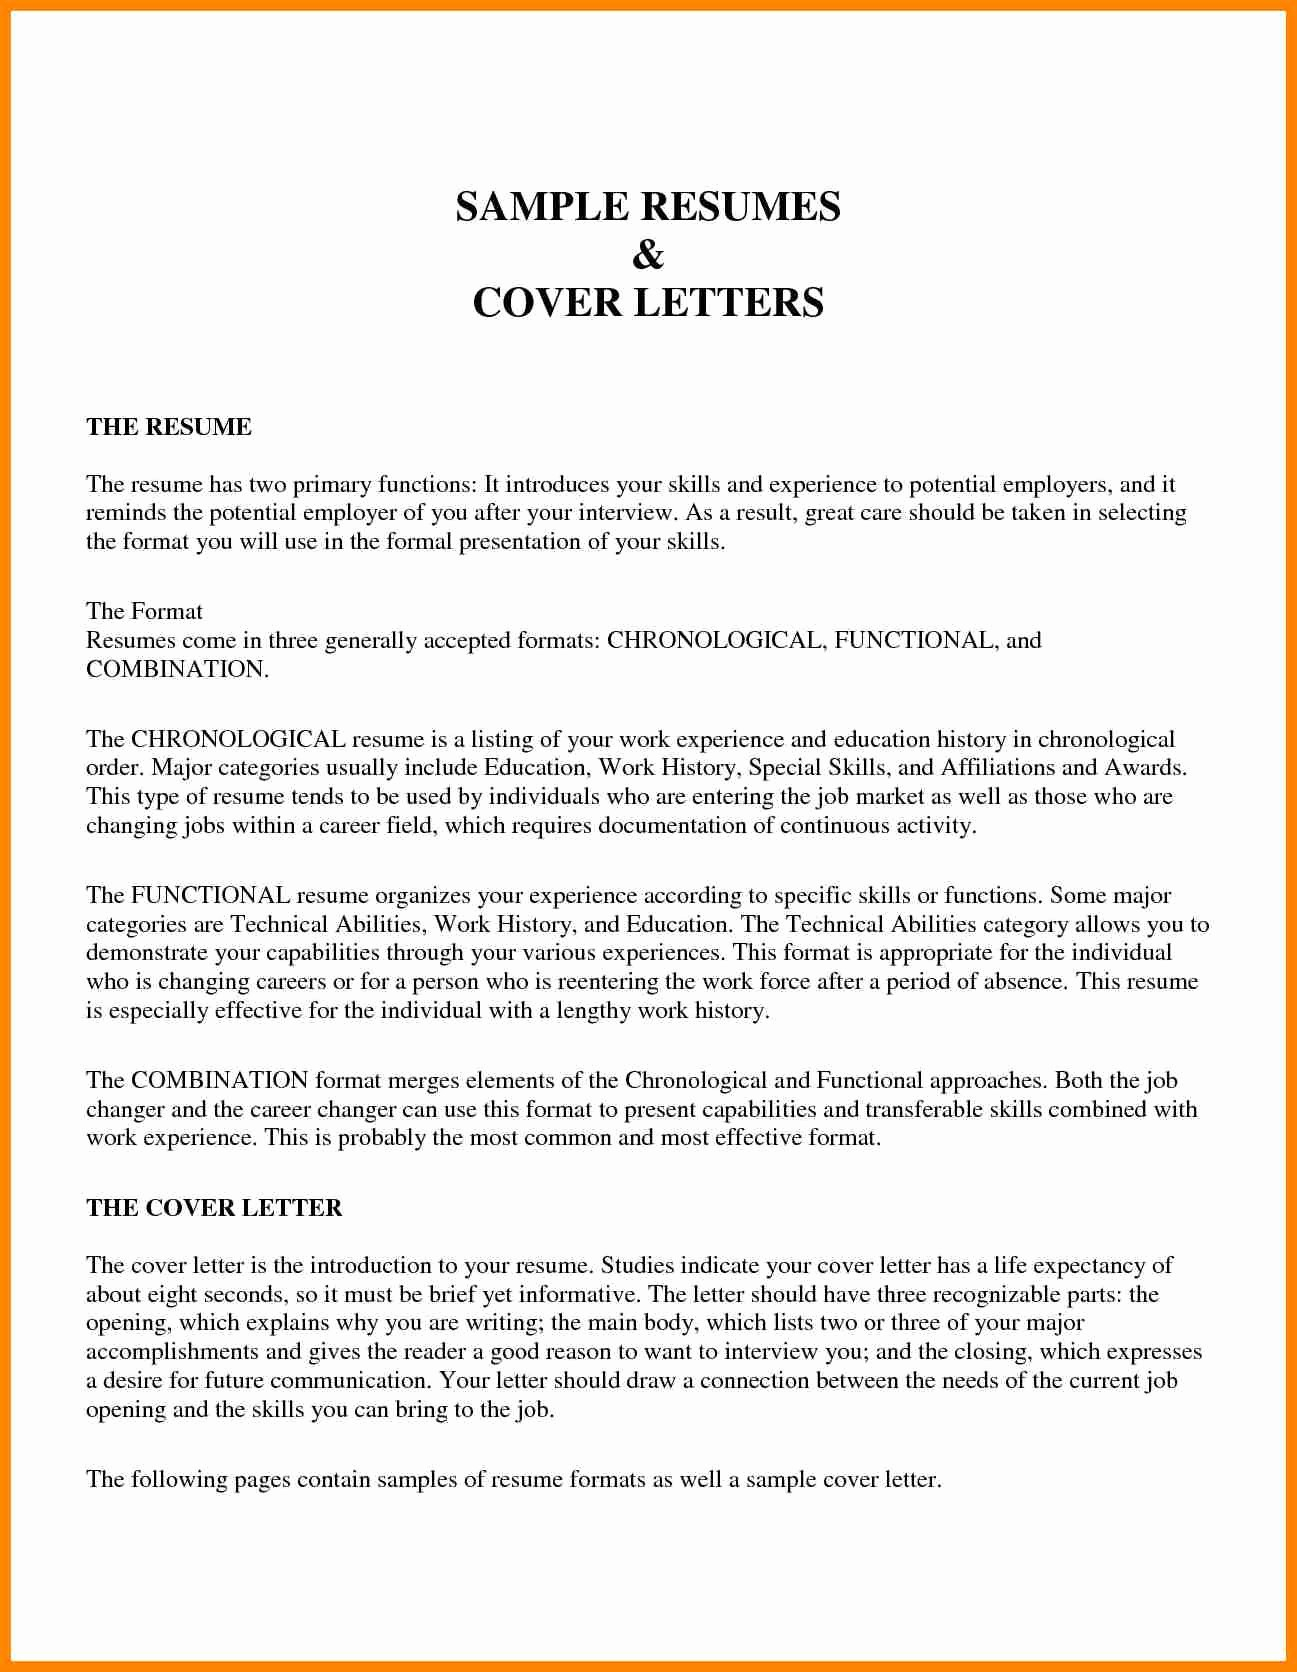 Free Cover Letter Template Google Docs - Free Resume Templates Google Docs Unique Chemistry Resume Template